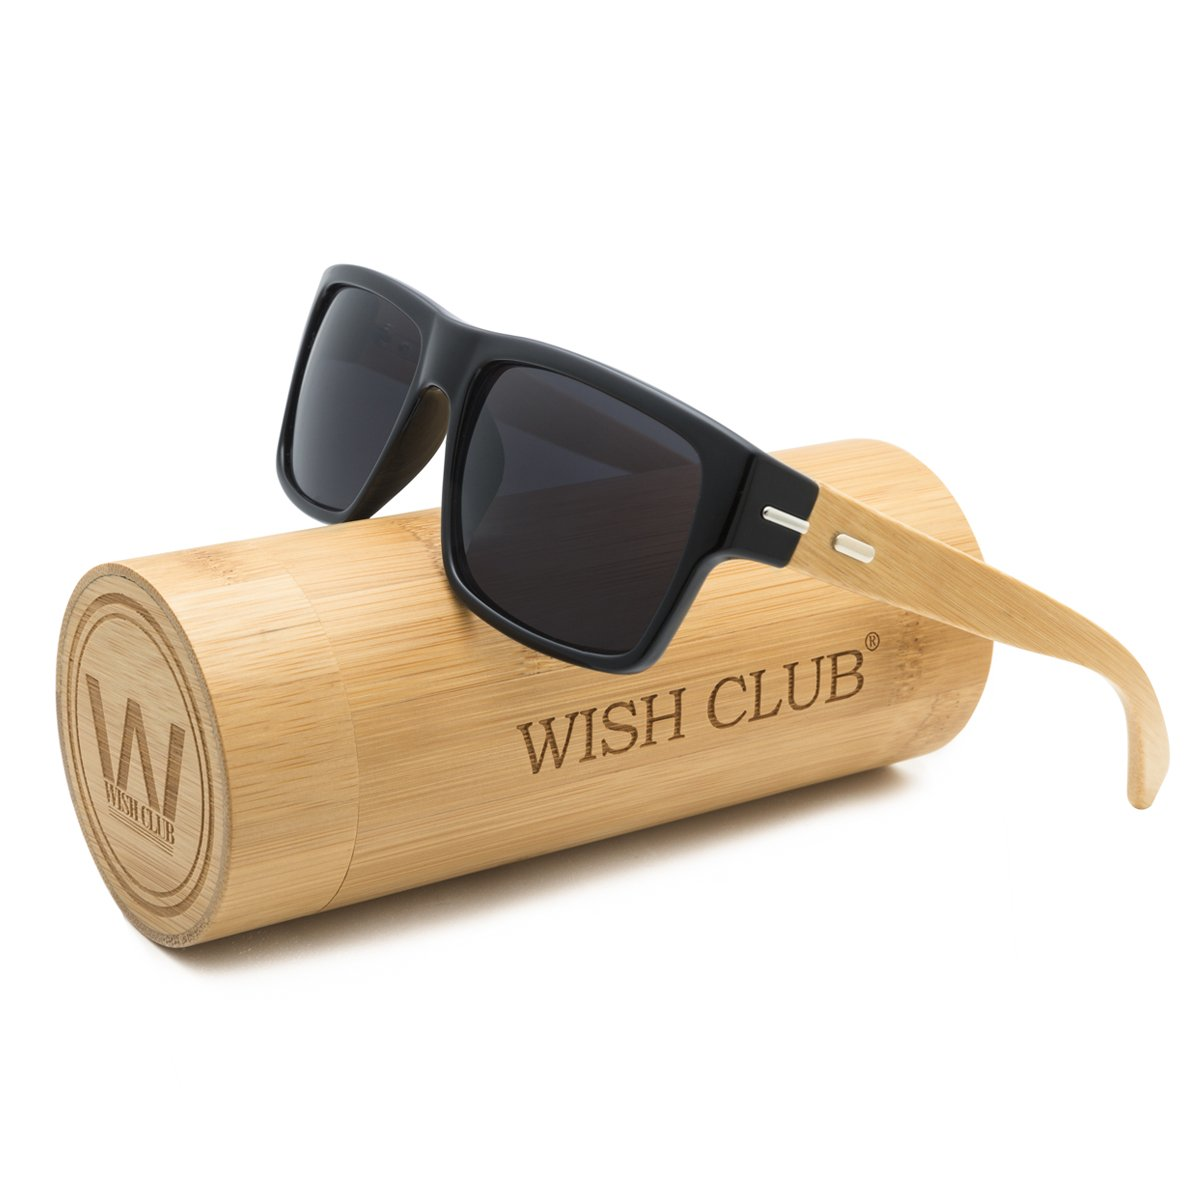 WISH CLUB Wood Square Handmade Sunglasses UV 400 Lenses Classical Style for Women and Men Adults Wooden Bamboo Vintage Light Retro Glasses (Grey) by WISH CLUB